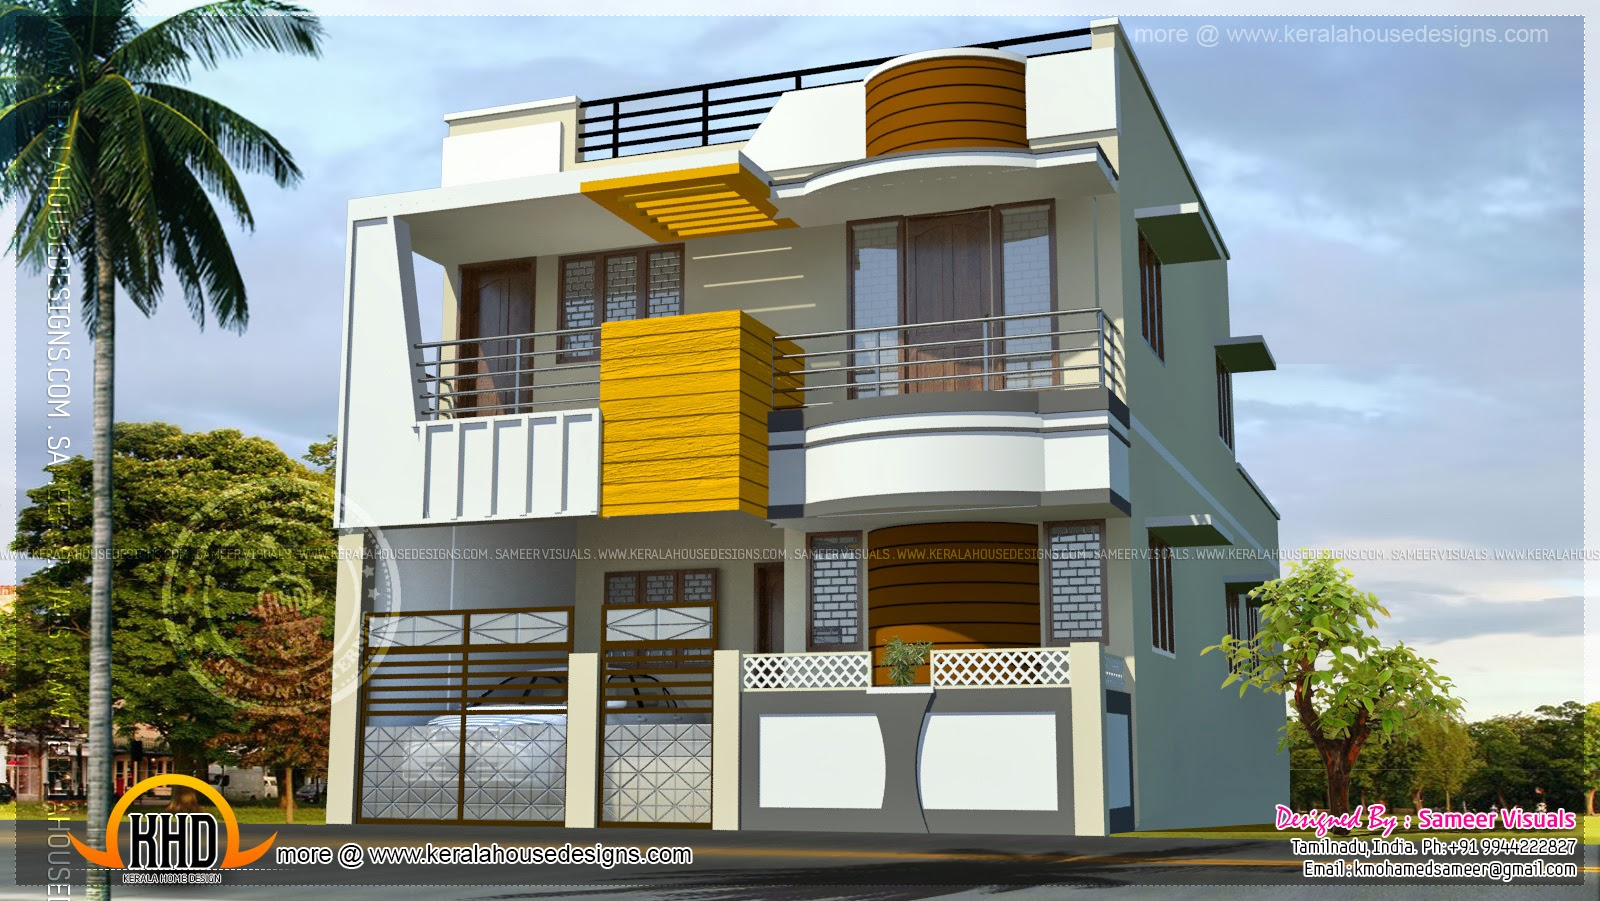 Double storied modern south indian home kerala home for Indian homes front design